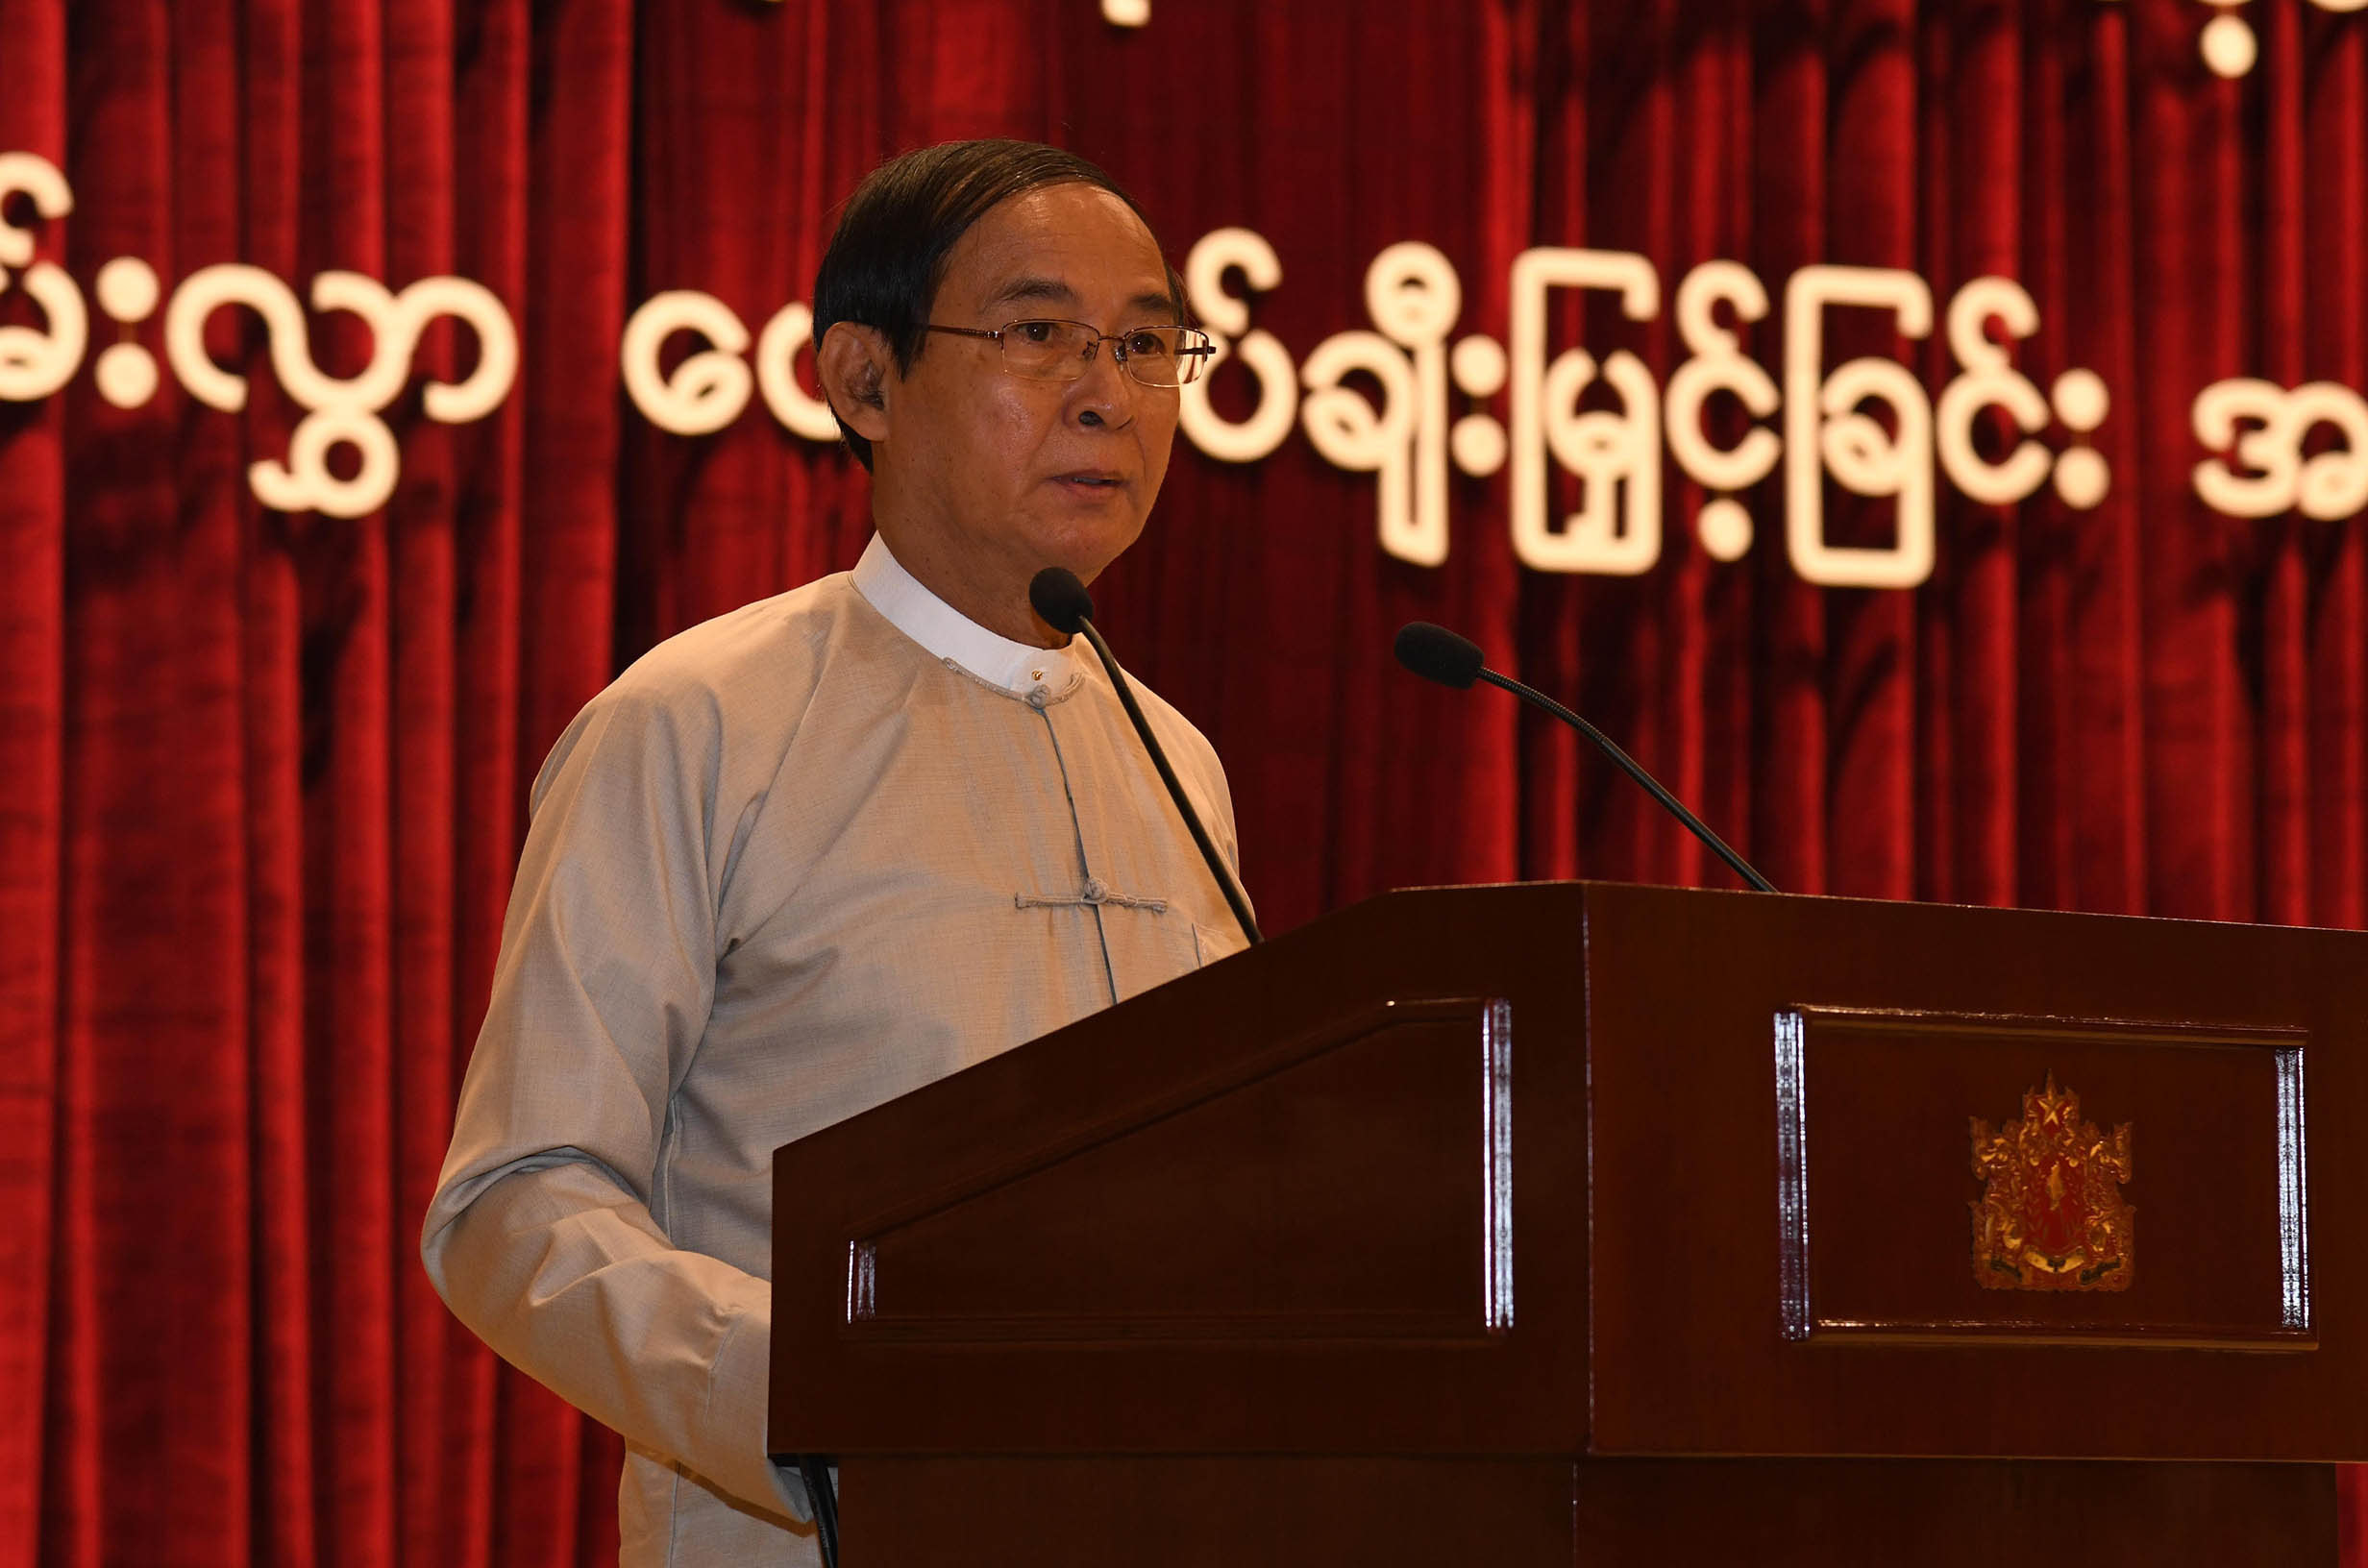 President U Win Myint speaks during the ceremony to honour taxpayers at the Presidential Palace in Nay Pyi Taw on 10 August 2020.Photo: MNA